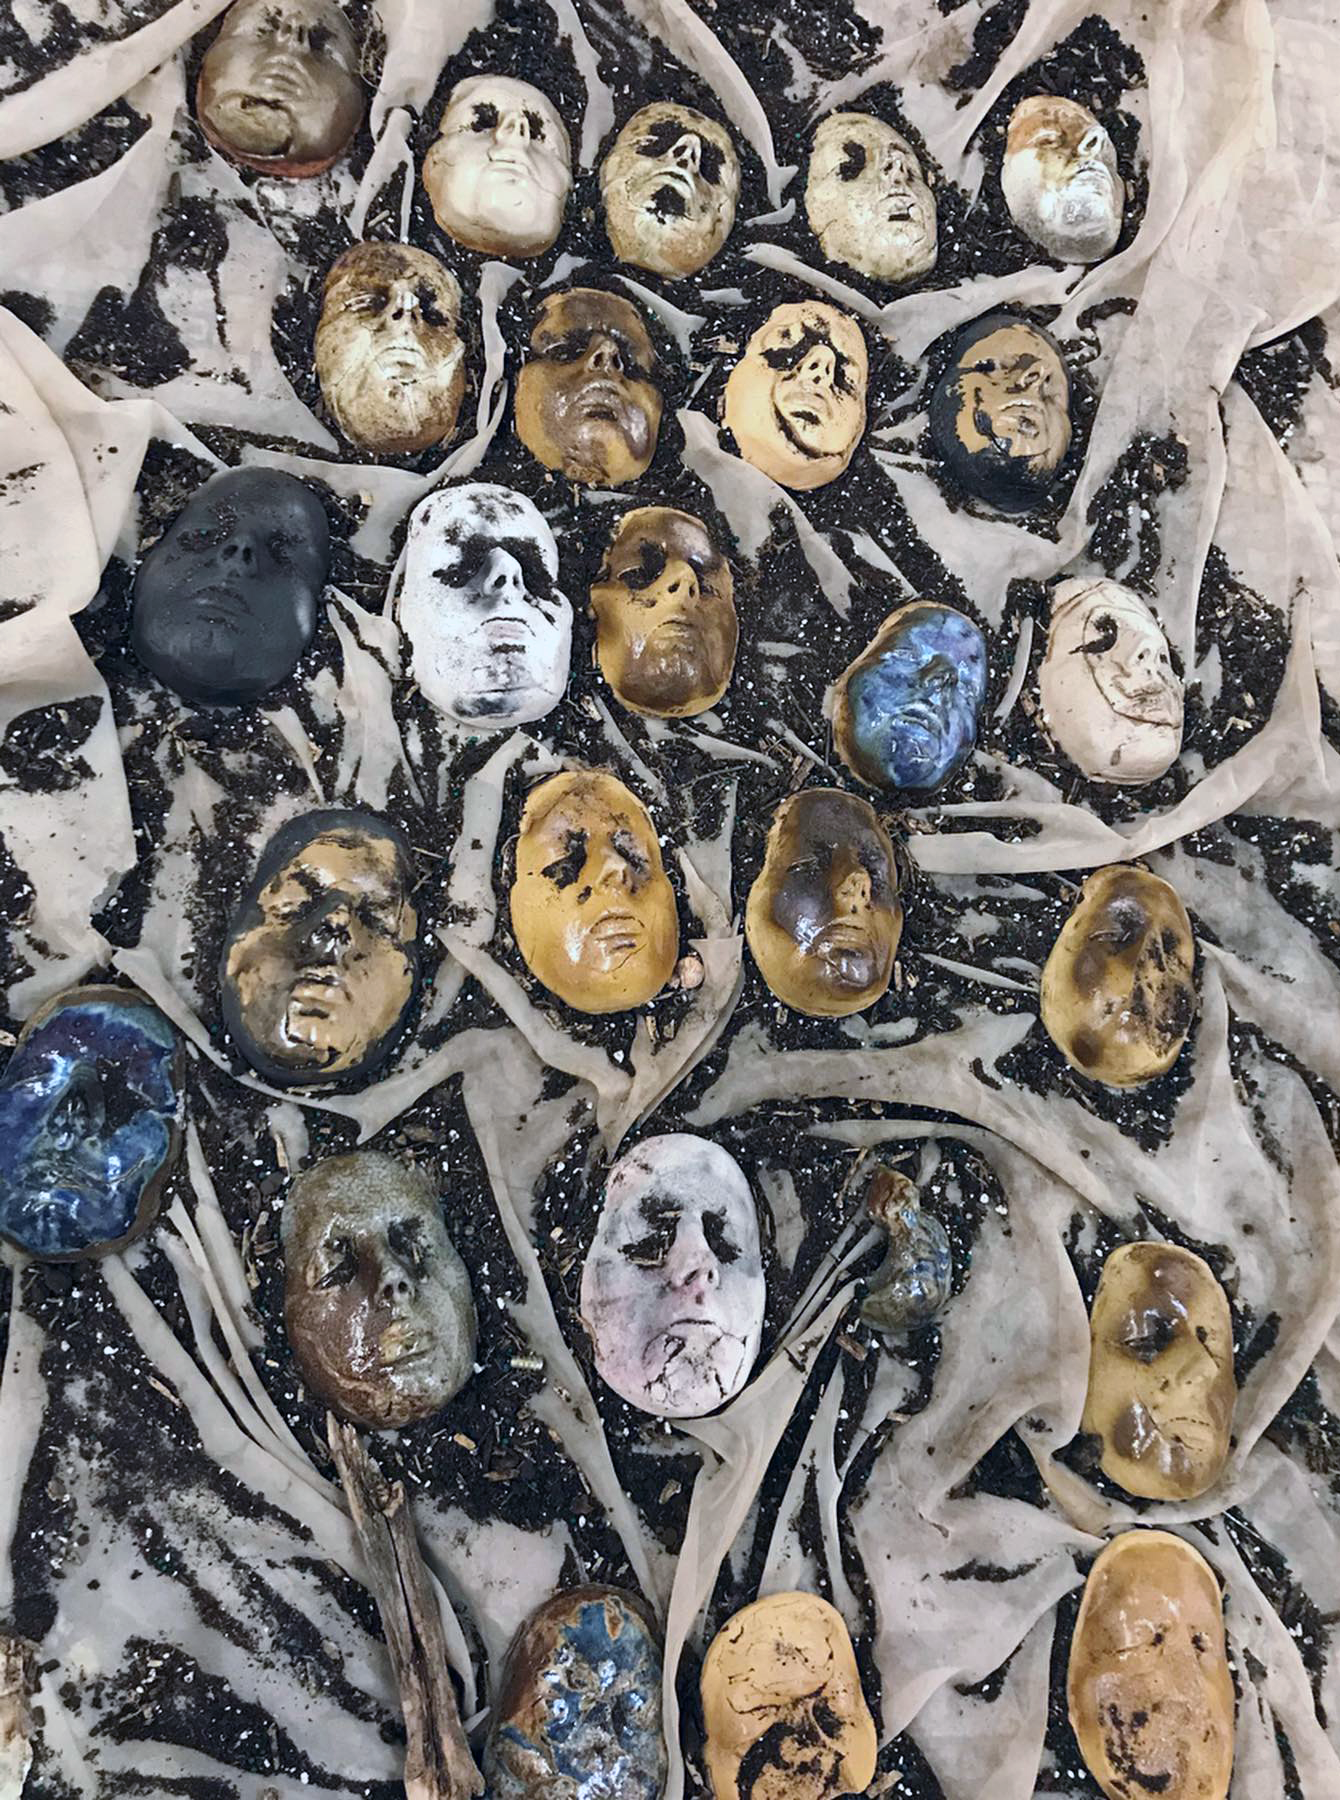 life cast of ceramic faces on soil and fabric with different personal items including jewelry, photographs and books